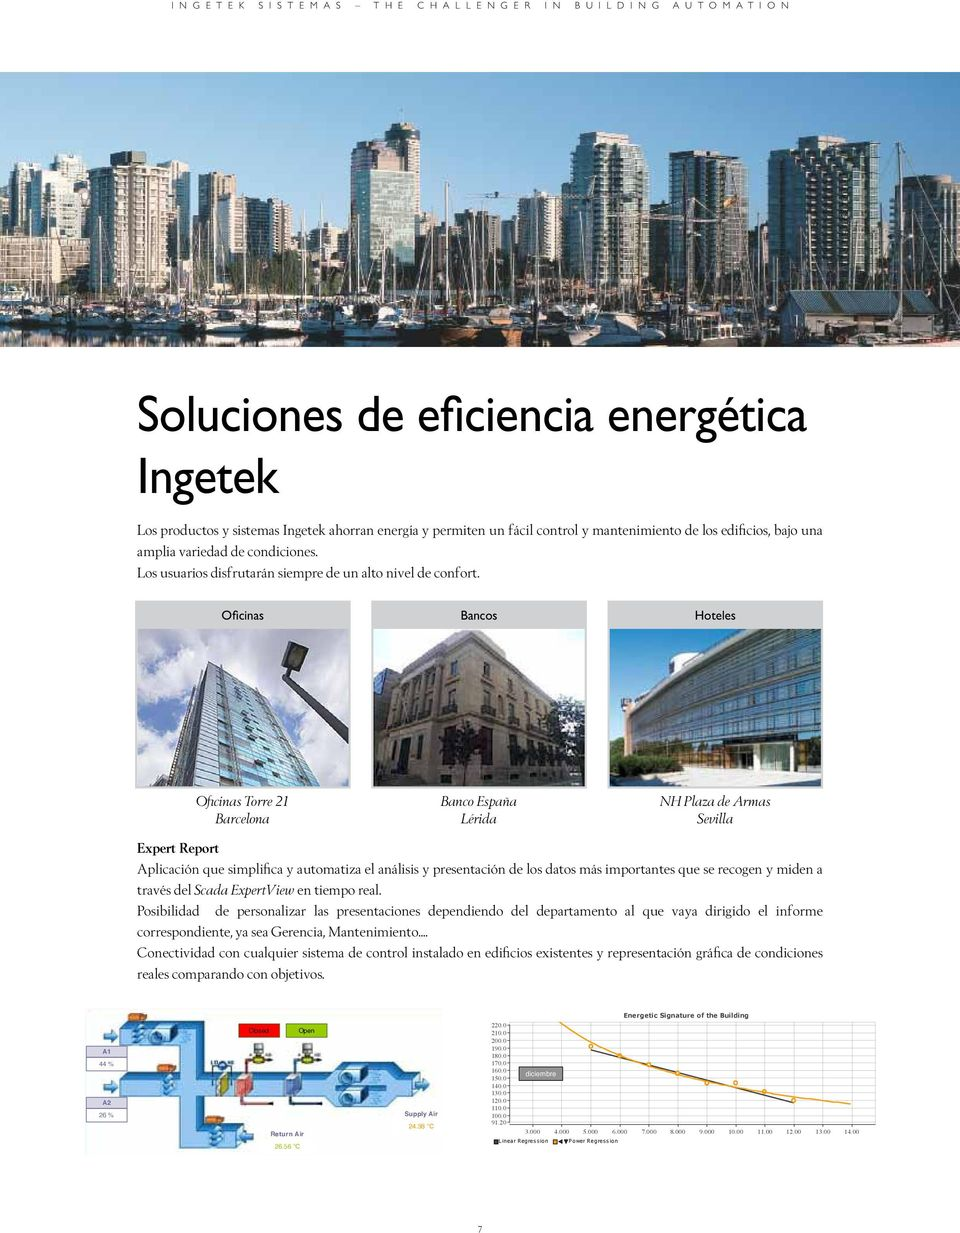 20 ï Electrical Distribution Systems ï Energy Producing Systems ï Building Envelope ï HVAC Systems diciembre ï Lighting ï Motor and Drives ï Other energy-consuming equipement Oficinas Torre 21